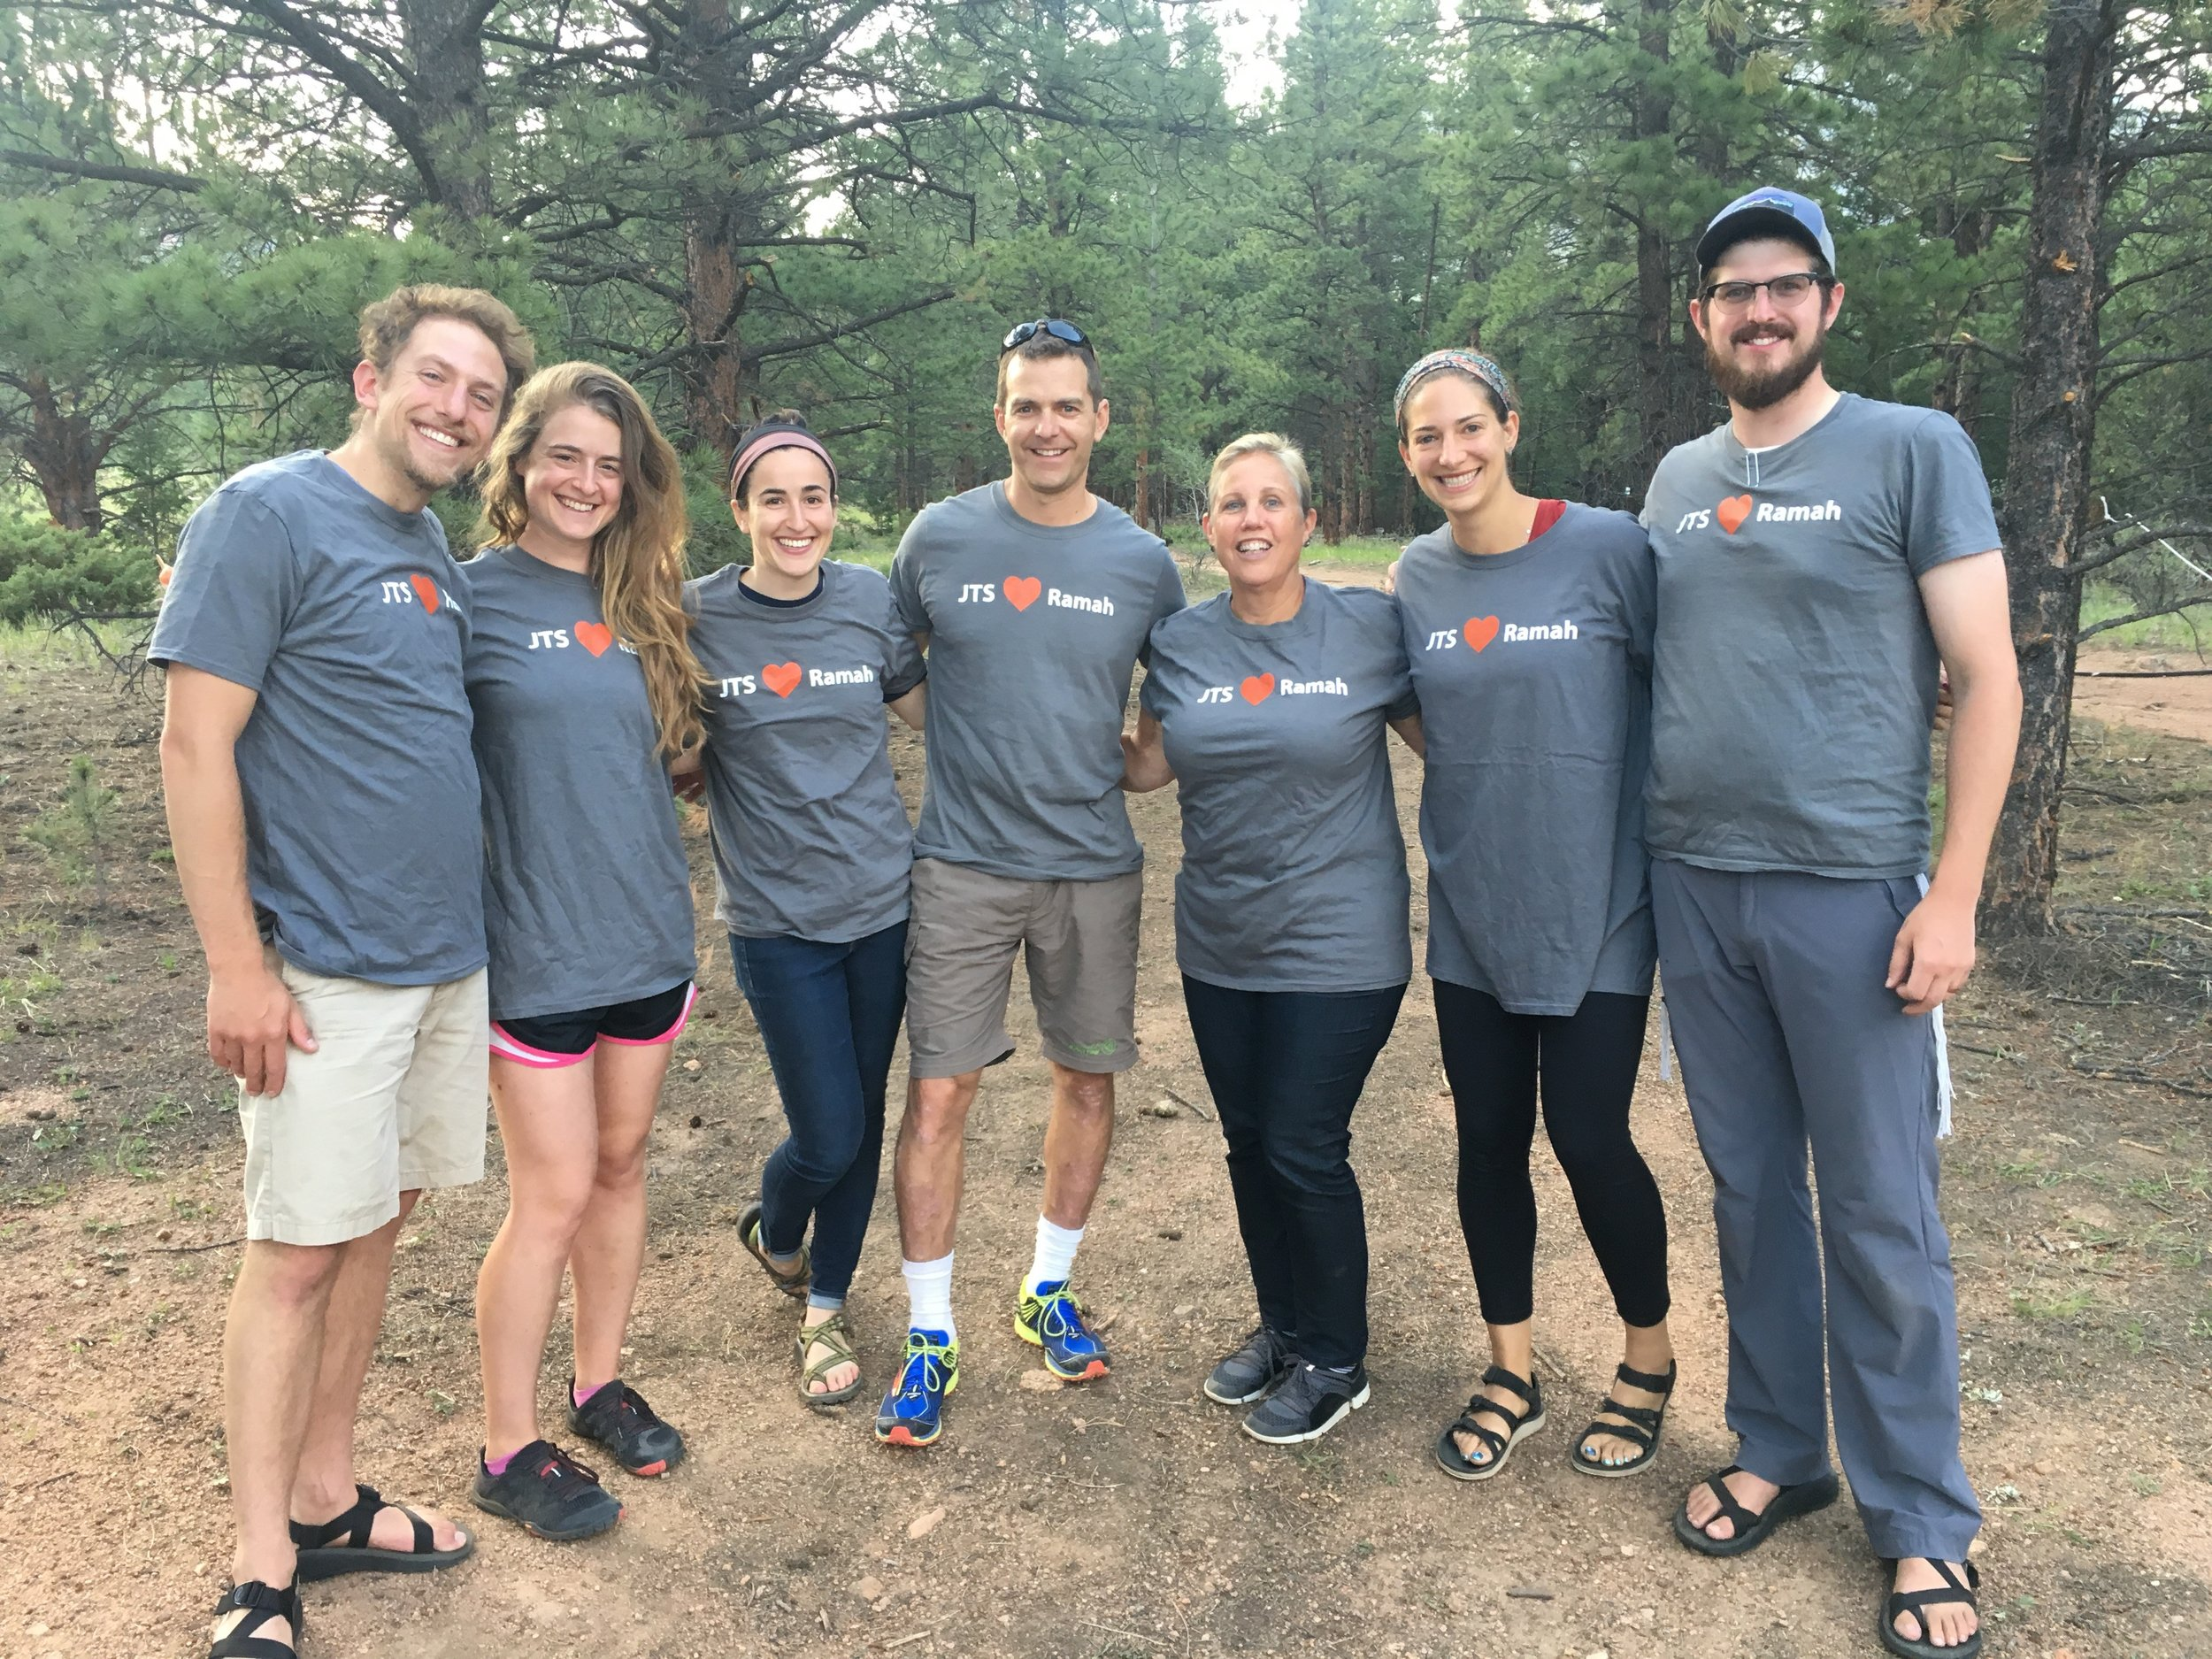 Cantor Nancy Abramson (third from right) at Ramah in the Rockies with JTS students and alumni